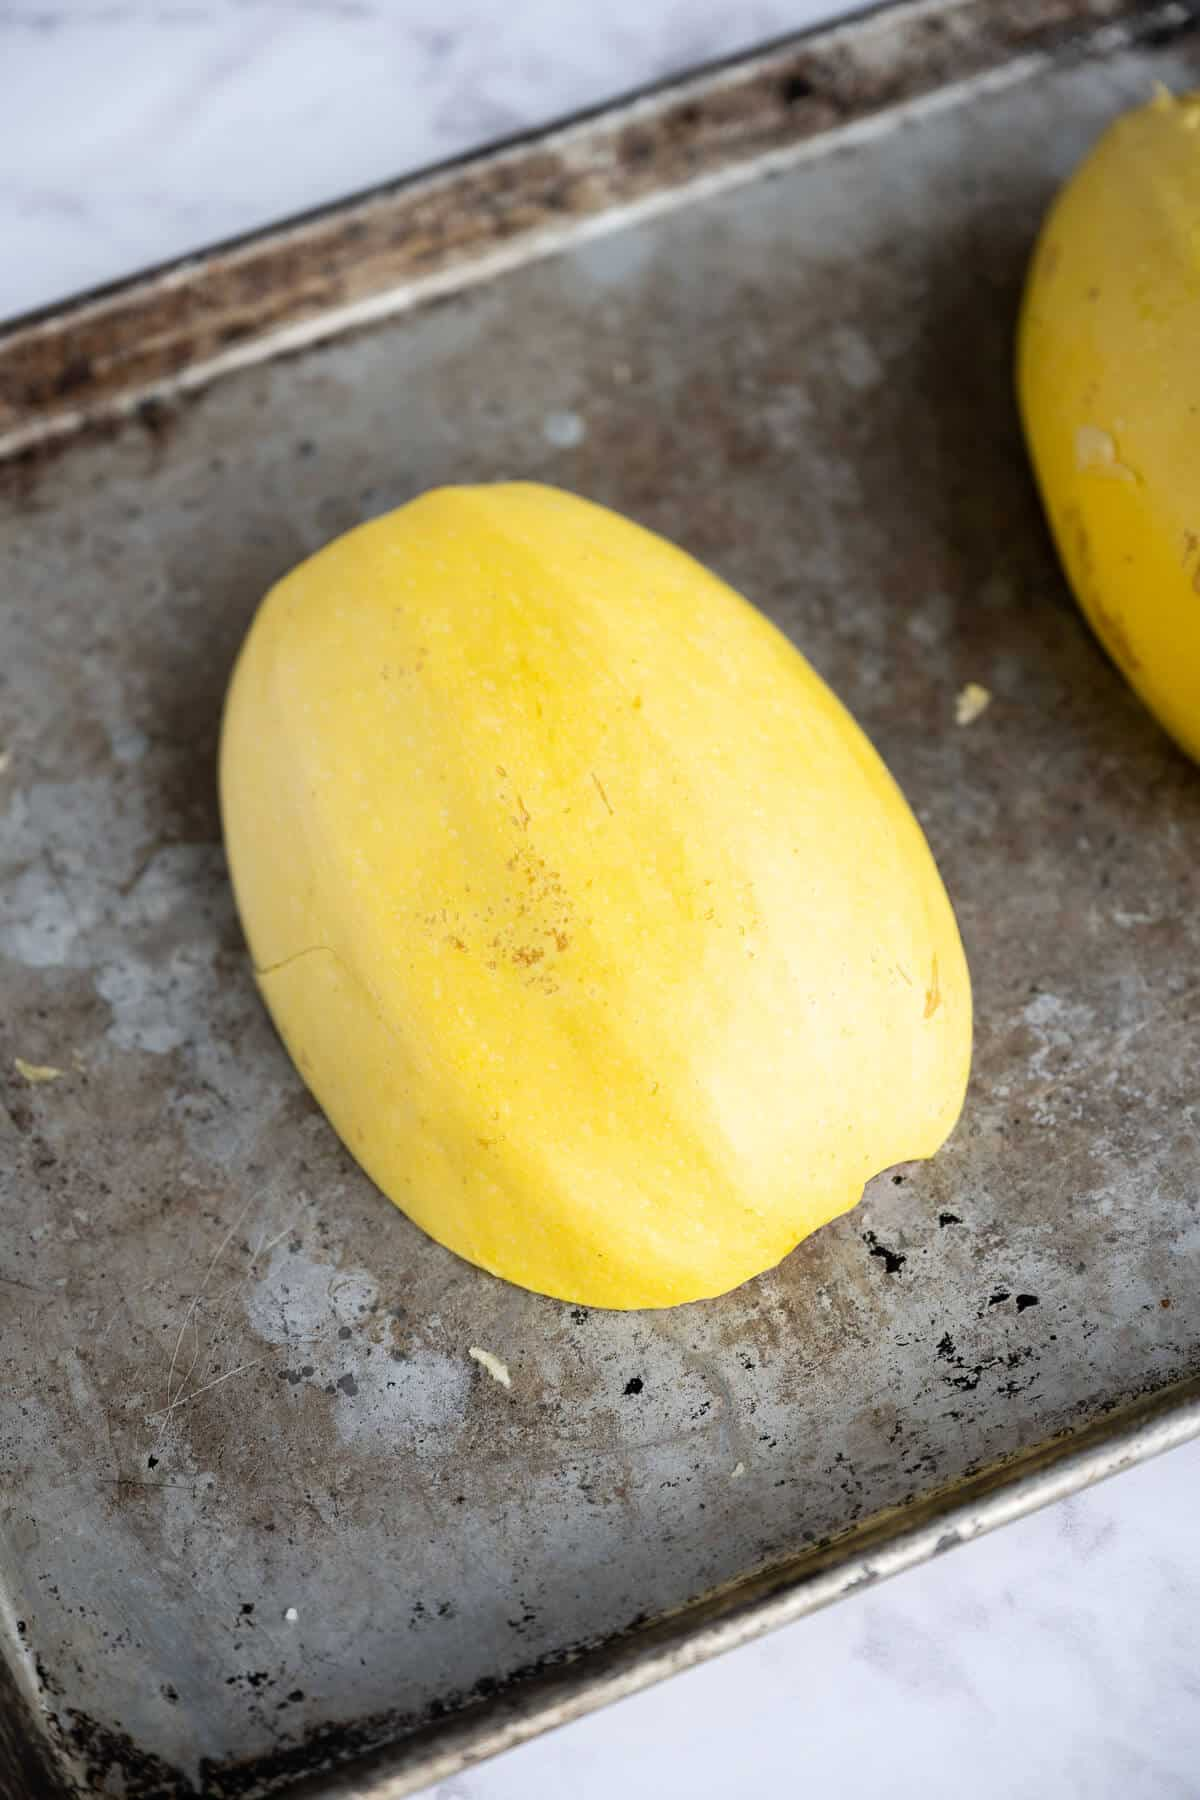 spaghetti squash sliced in half lengthwise cut side down on rimmed baking sheet.